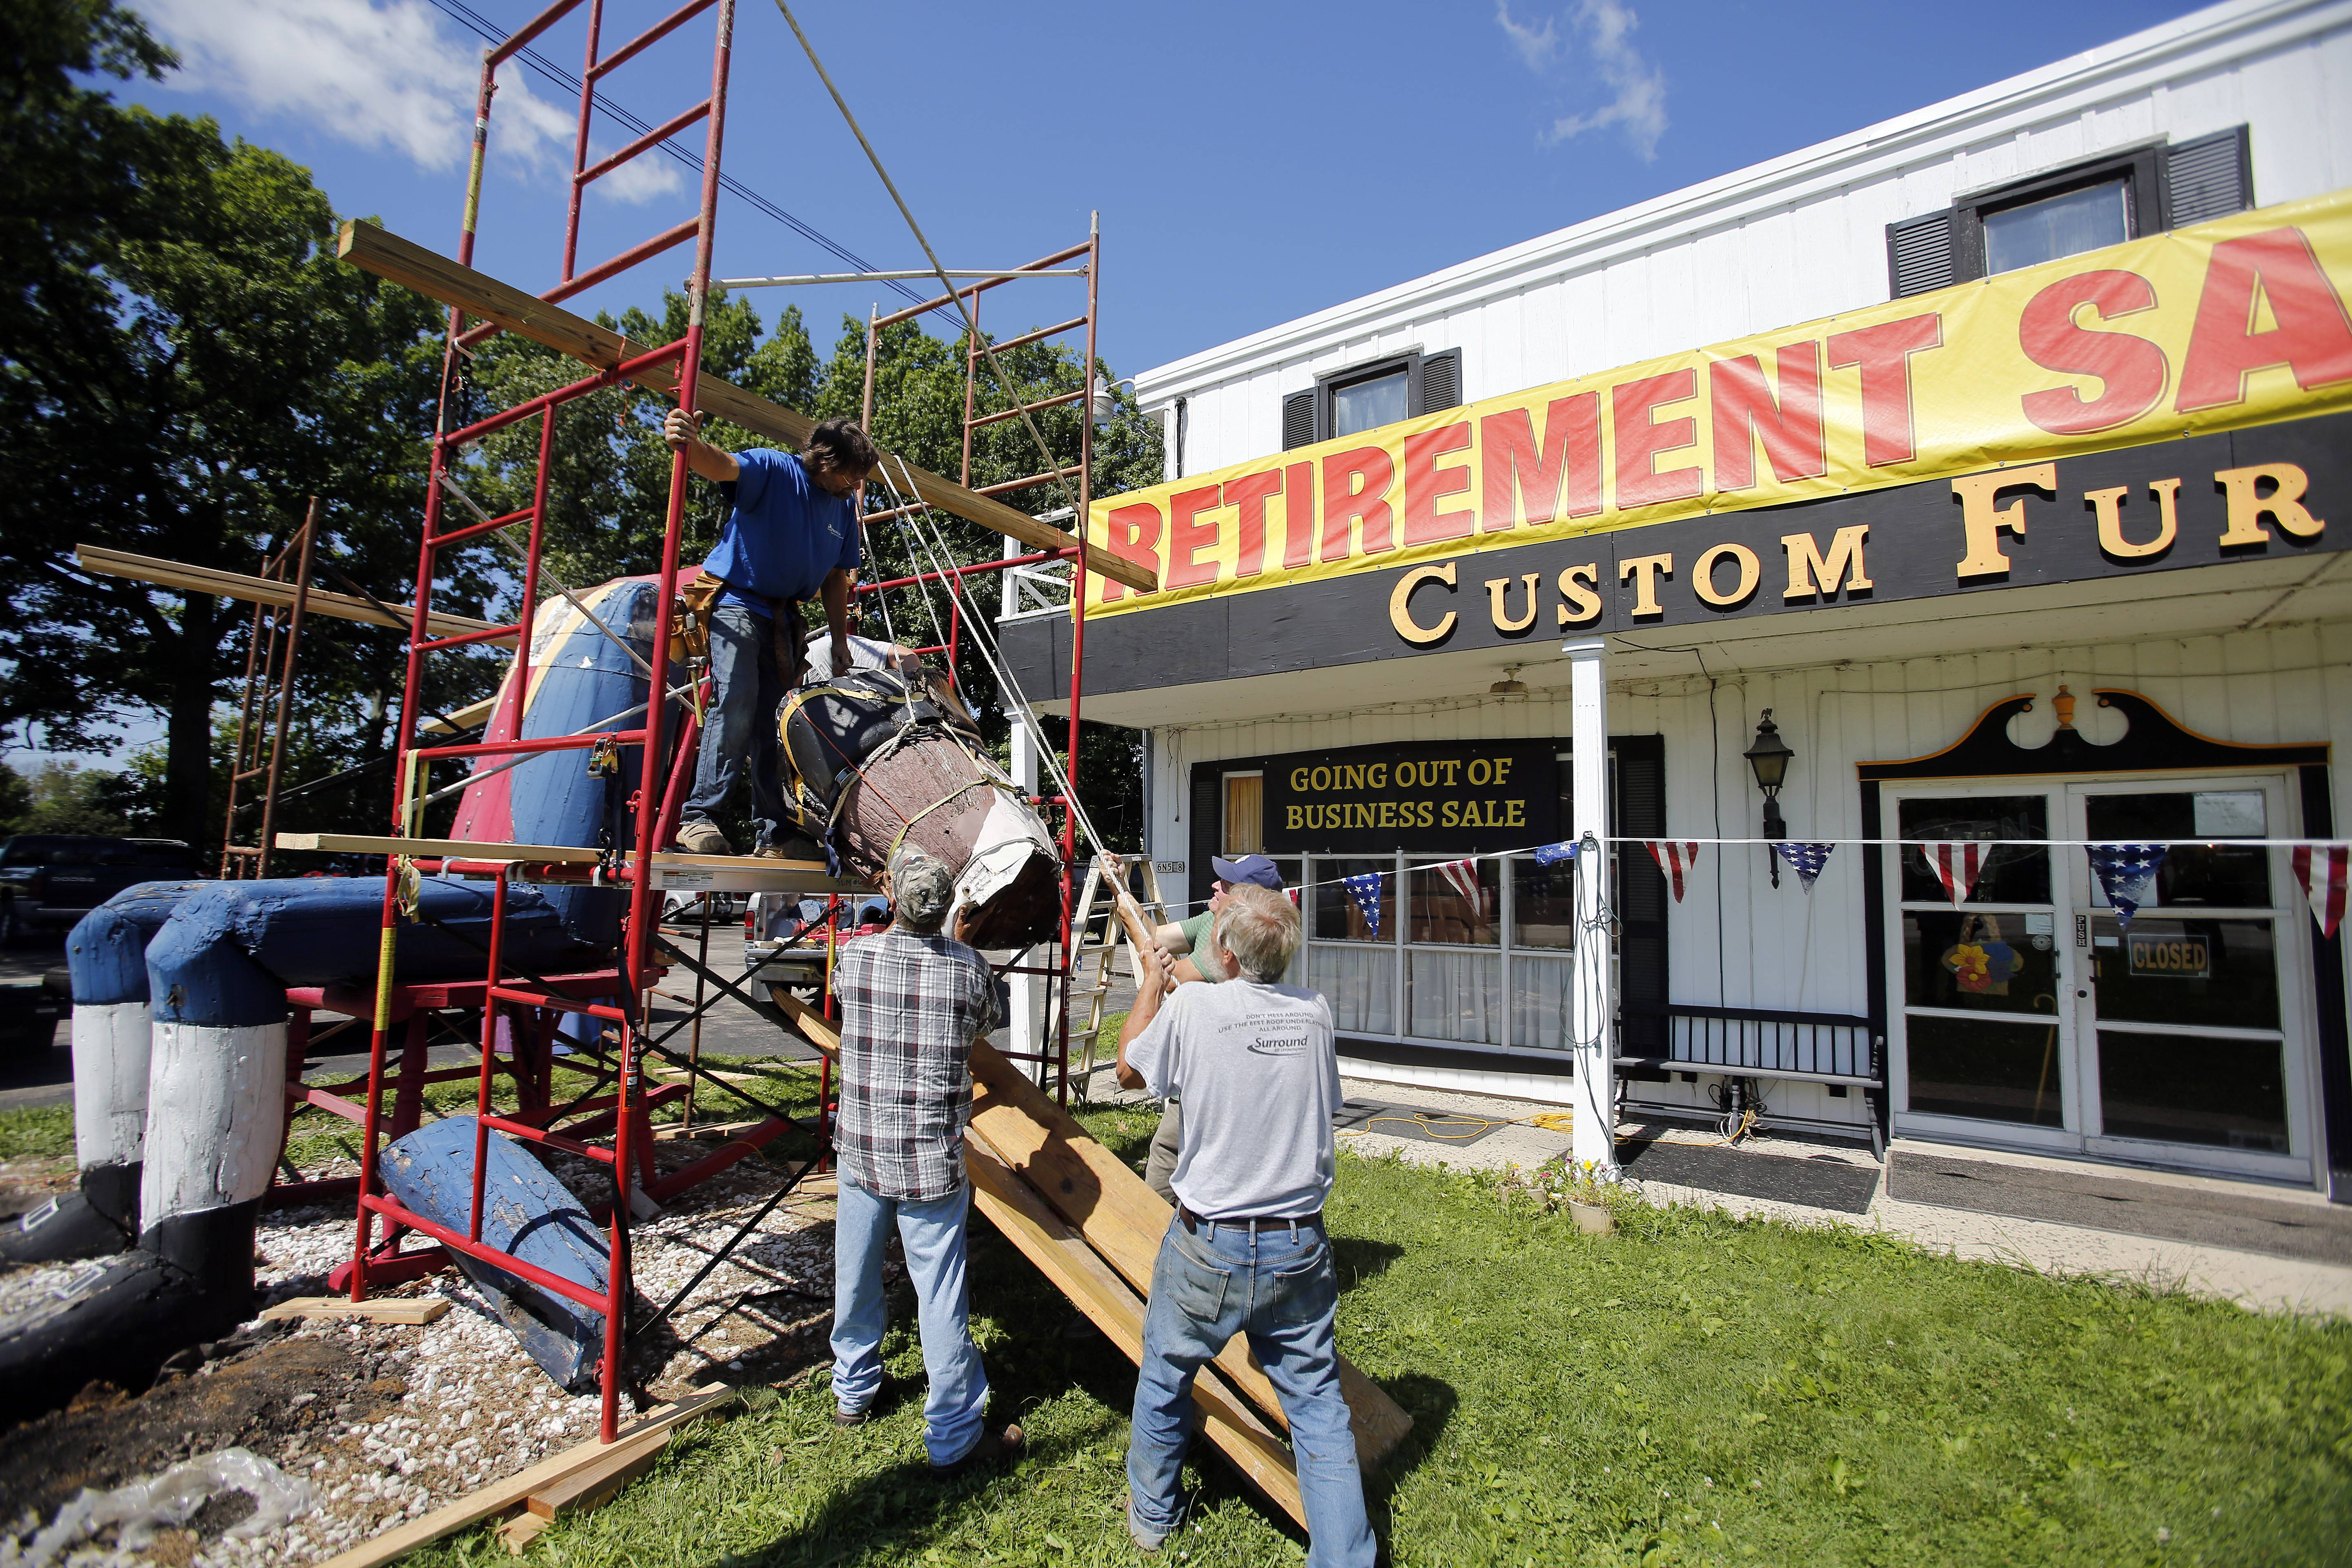 Workers lower the head Wednesday from the 25-foot-tall wood sculpture of Revolutionary War soldier at Custom Furniture in St. Charles.